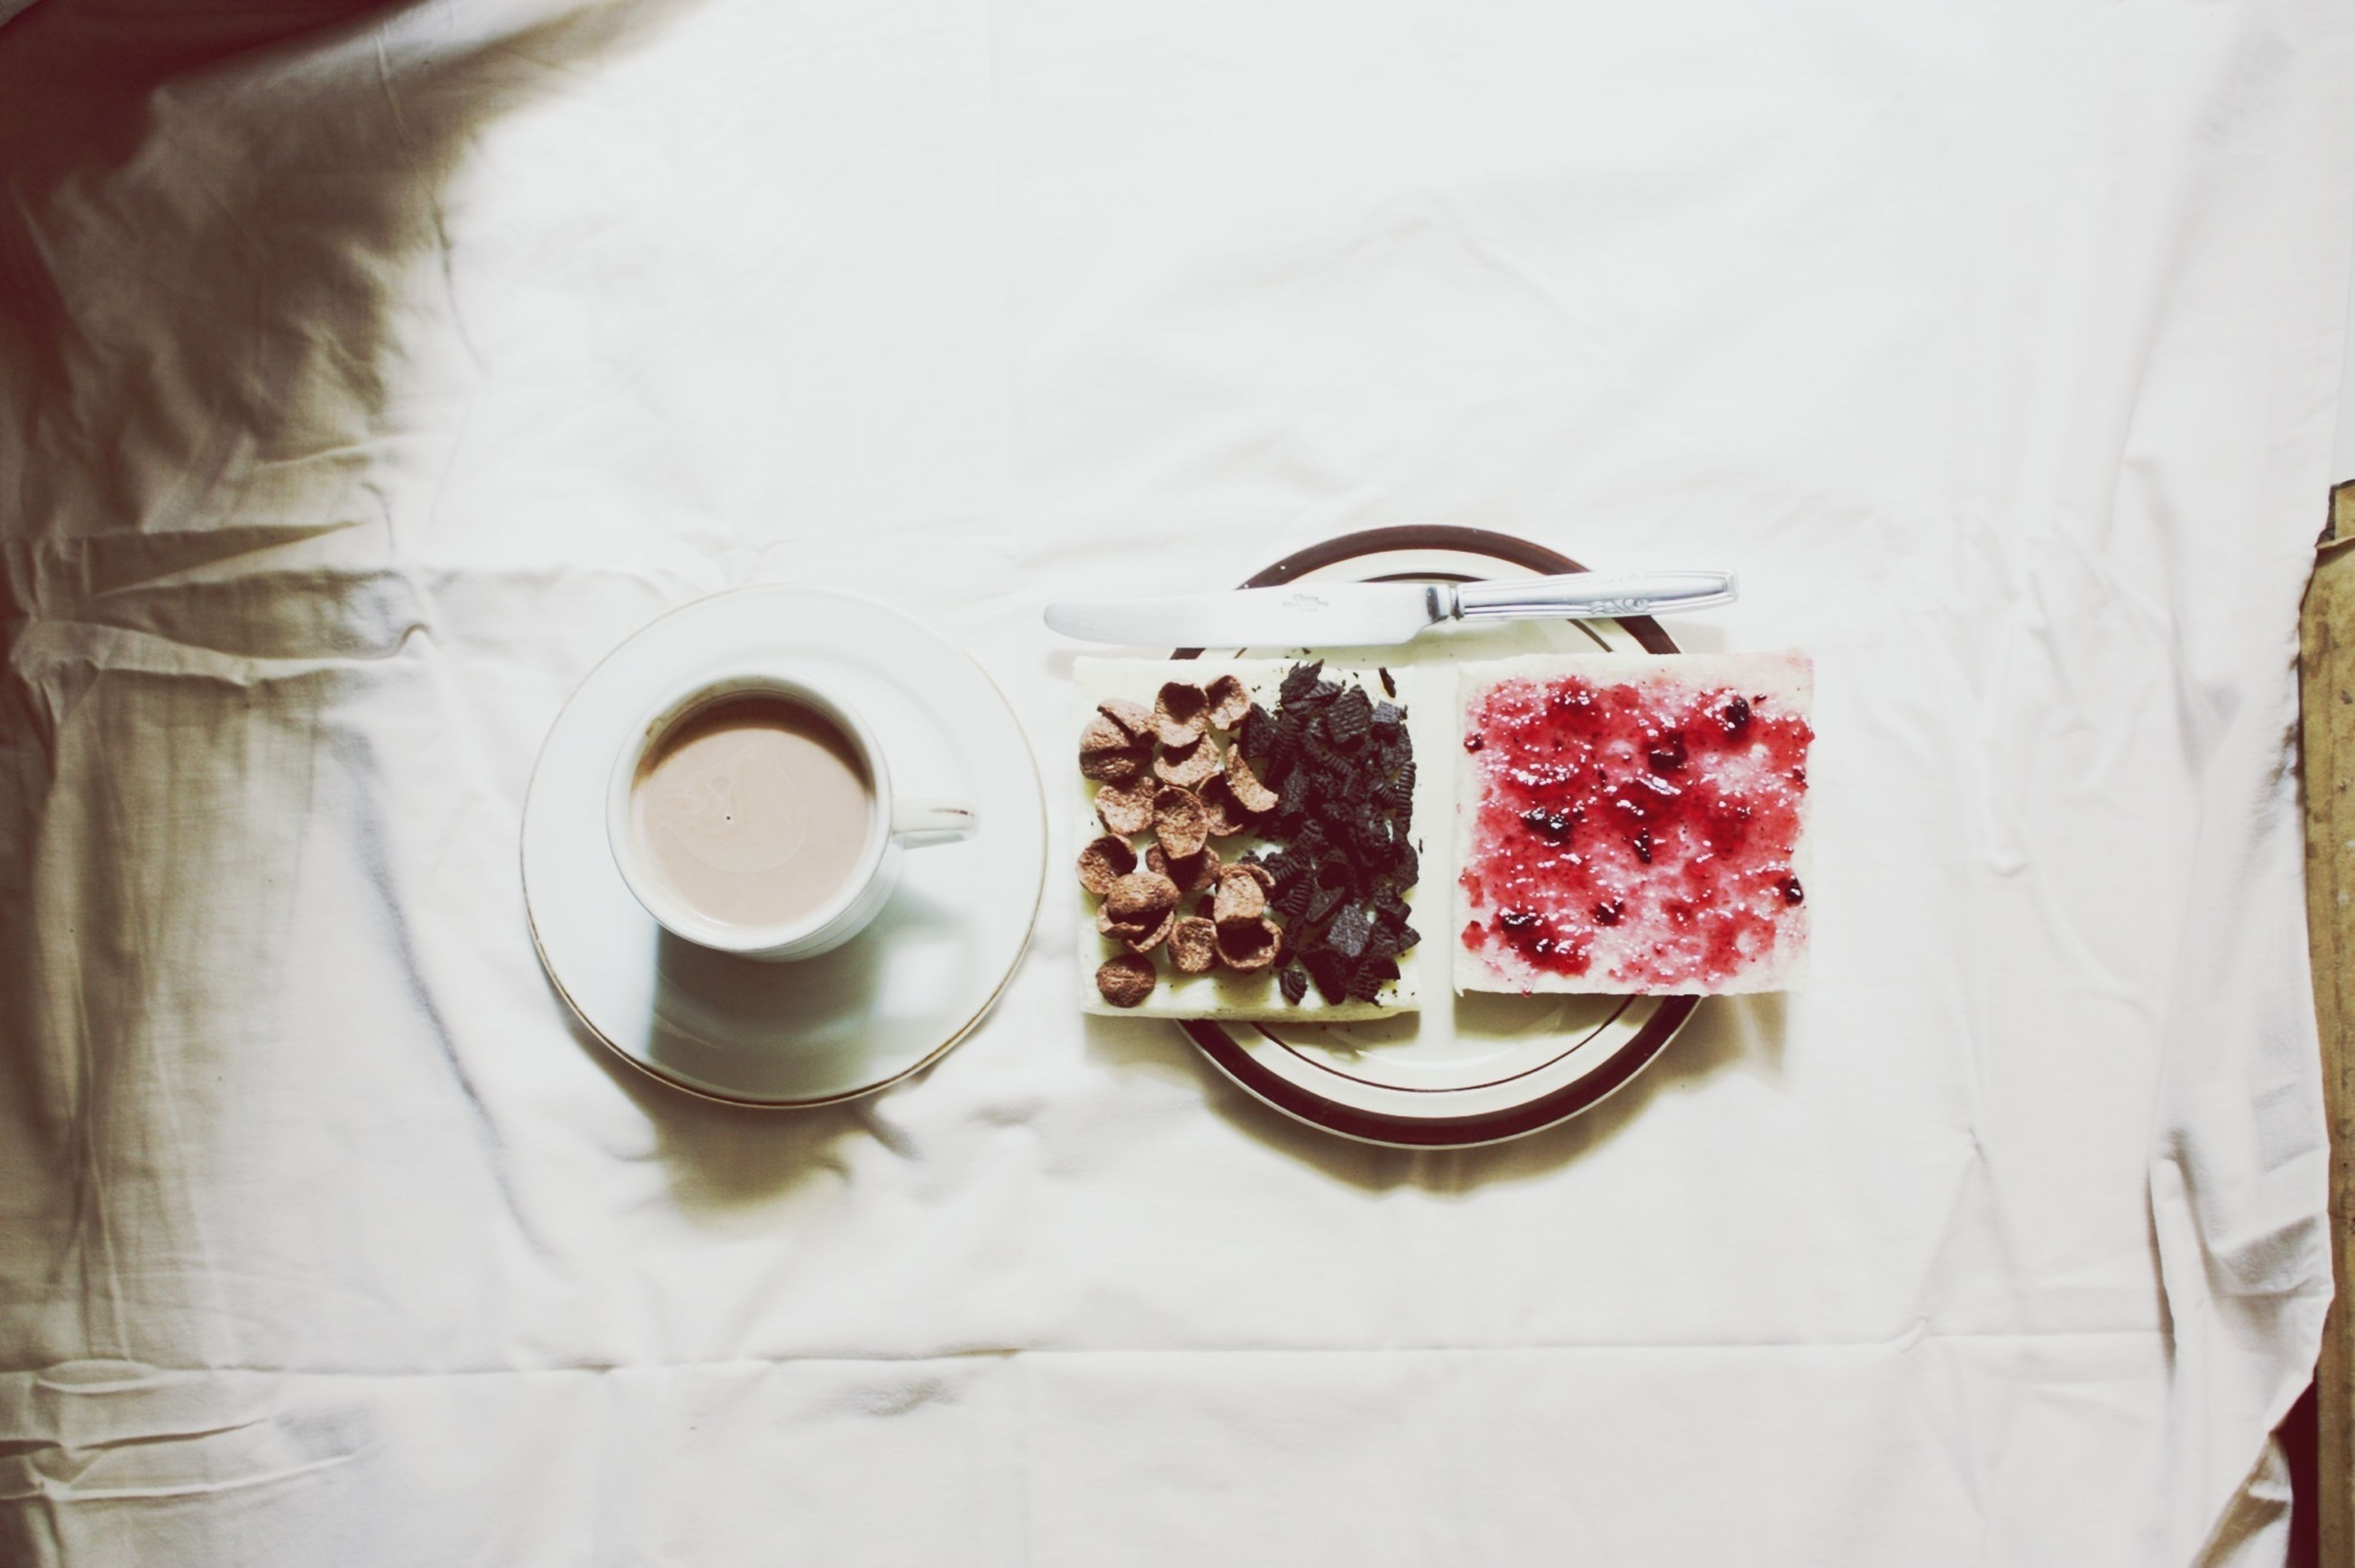 food and drink, indoors, freshness, drink, food, table, still life, refreshment, plate, coffee cup, high angle view, healthy eating, drinking glass, sweet food, ready-to-eat, coffee - drink, cup, directly above, fruit, red